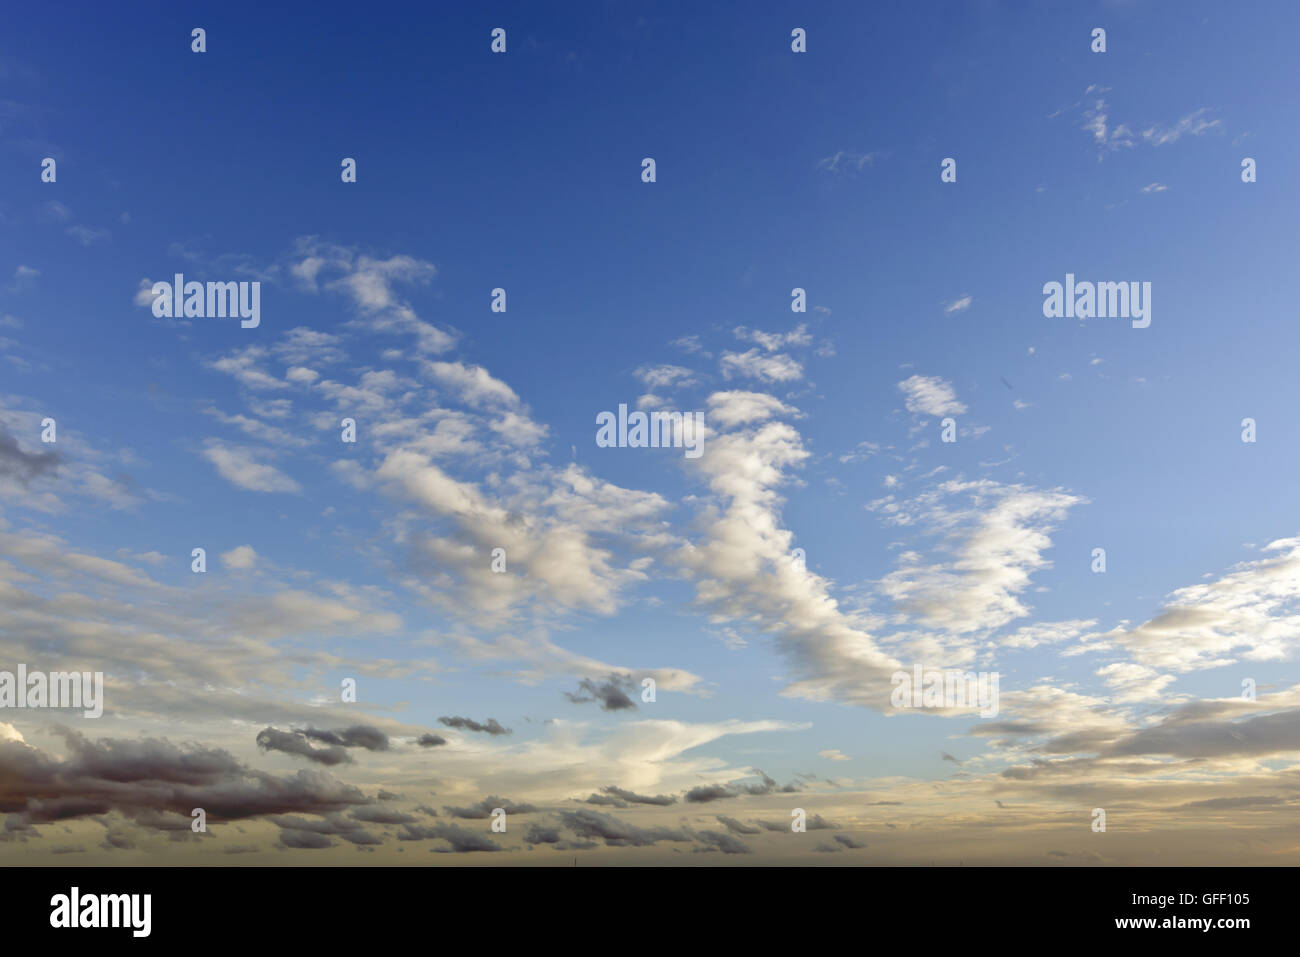 Sky background during evening sunset time with clouds Stock Photo